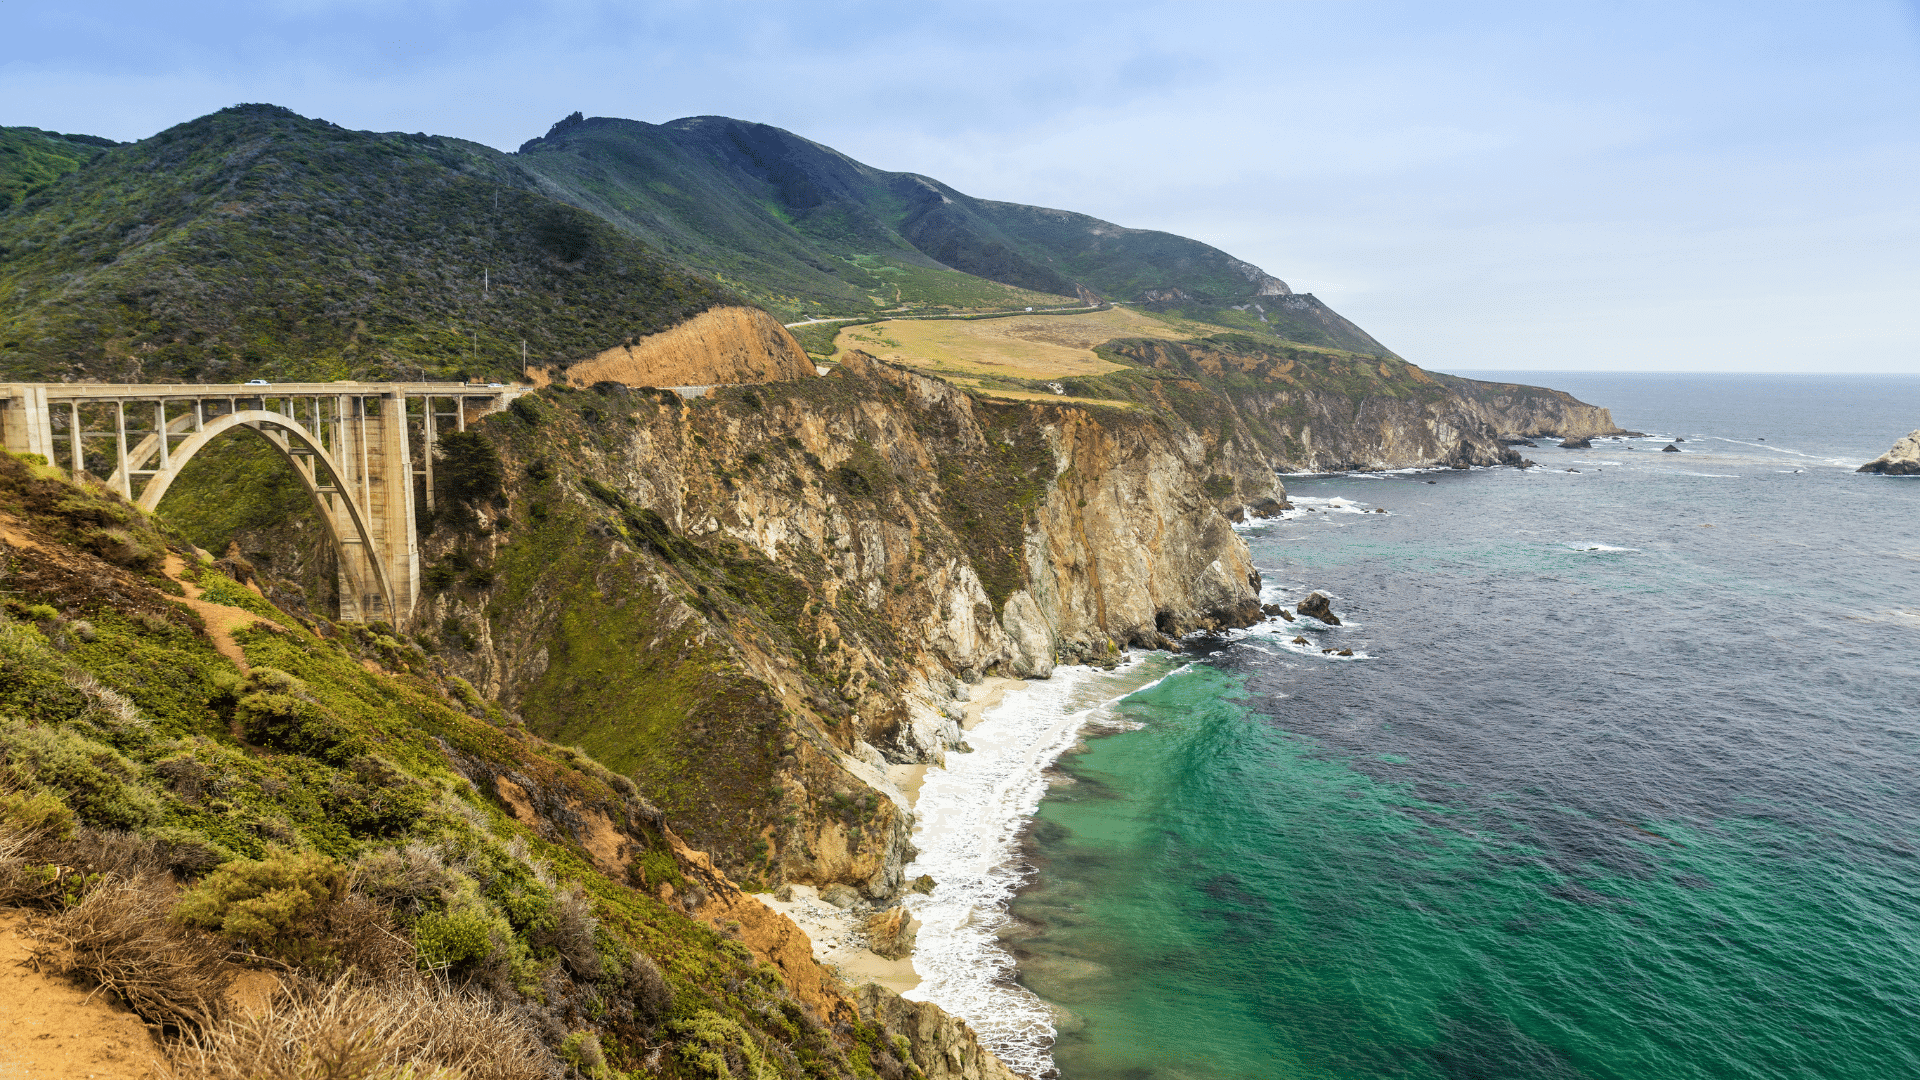 Bixby bridge in Big Sur elegantly connects the cliffs that hold Highway 1 above the Pacific ocean. A great road trip in Northern California.